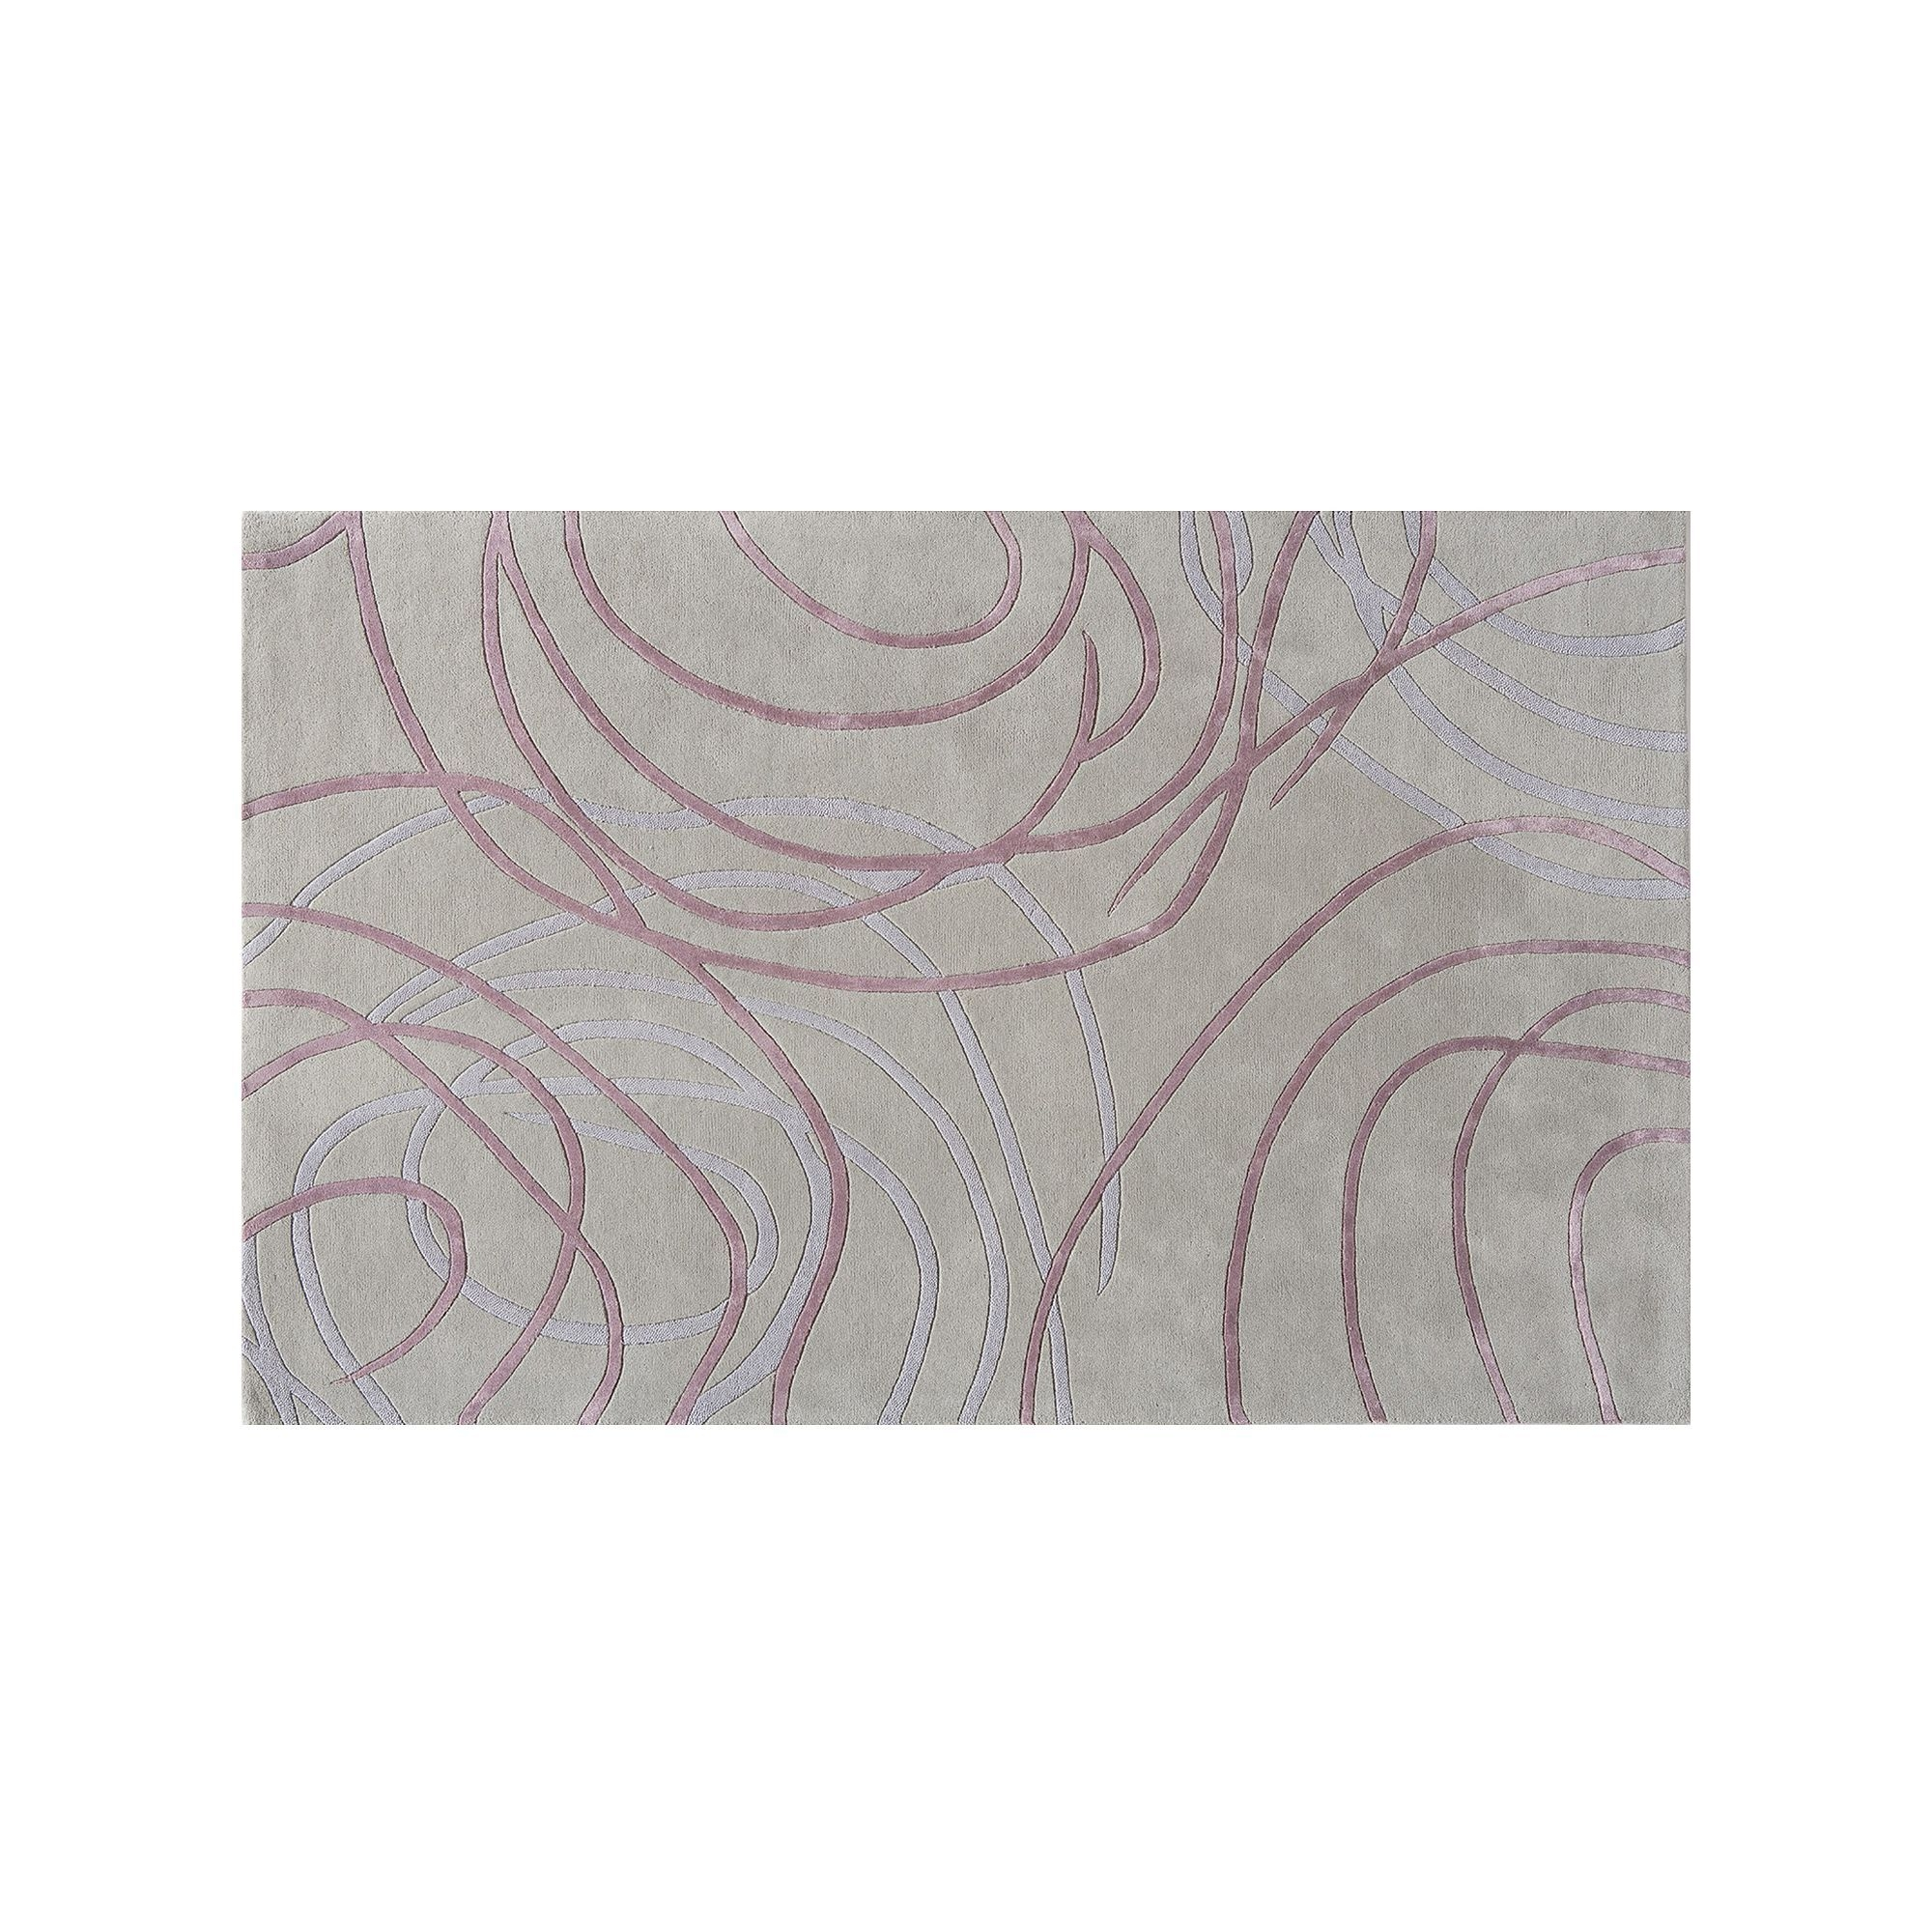 Rugs America Millenium Circular Abstract Wool Rug Grey Wool Rug Pertaining To Circular Green Rugs (Image 14 of 15)